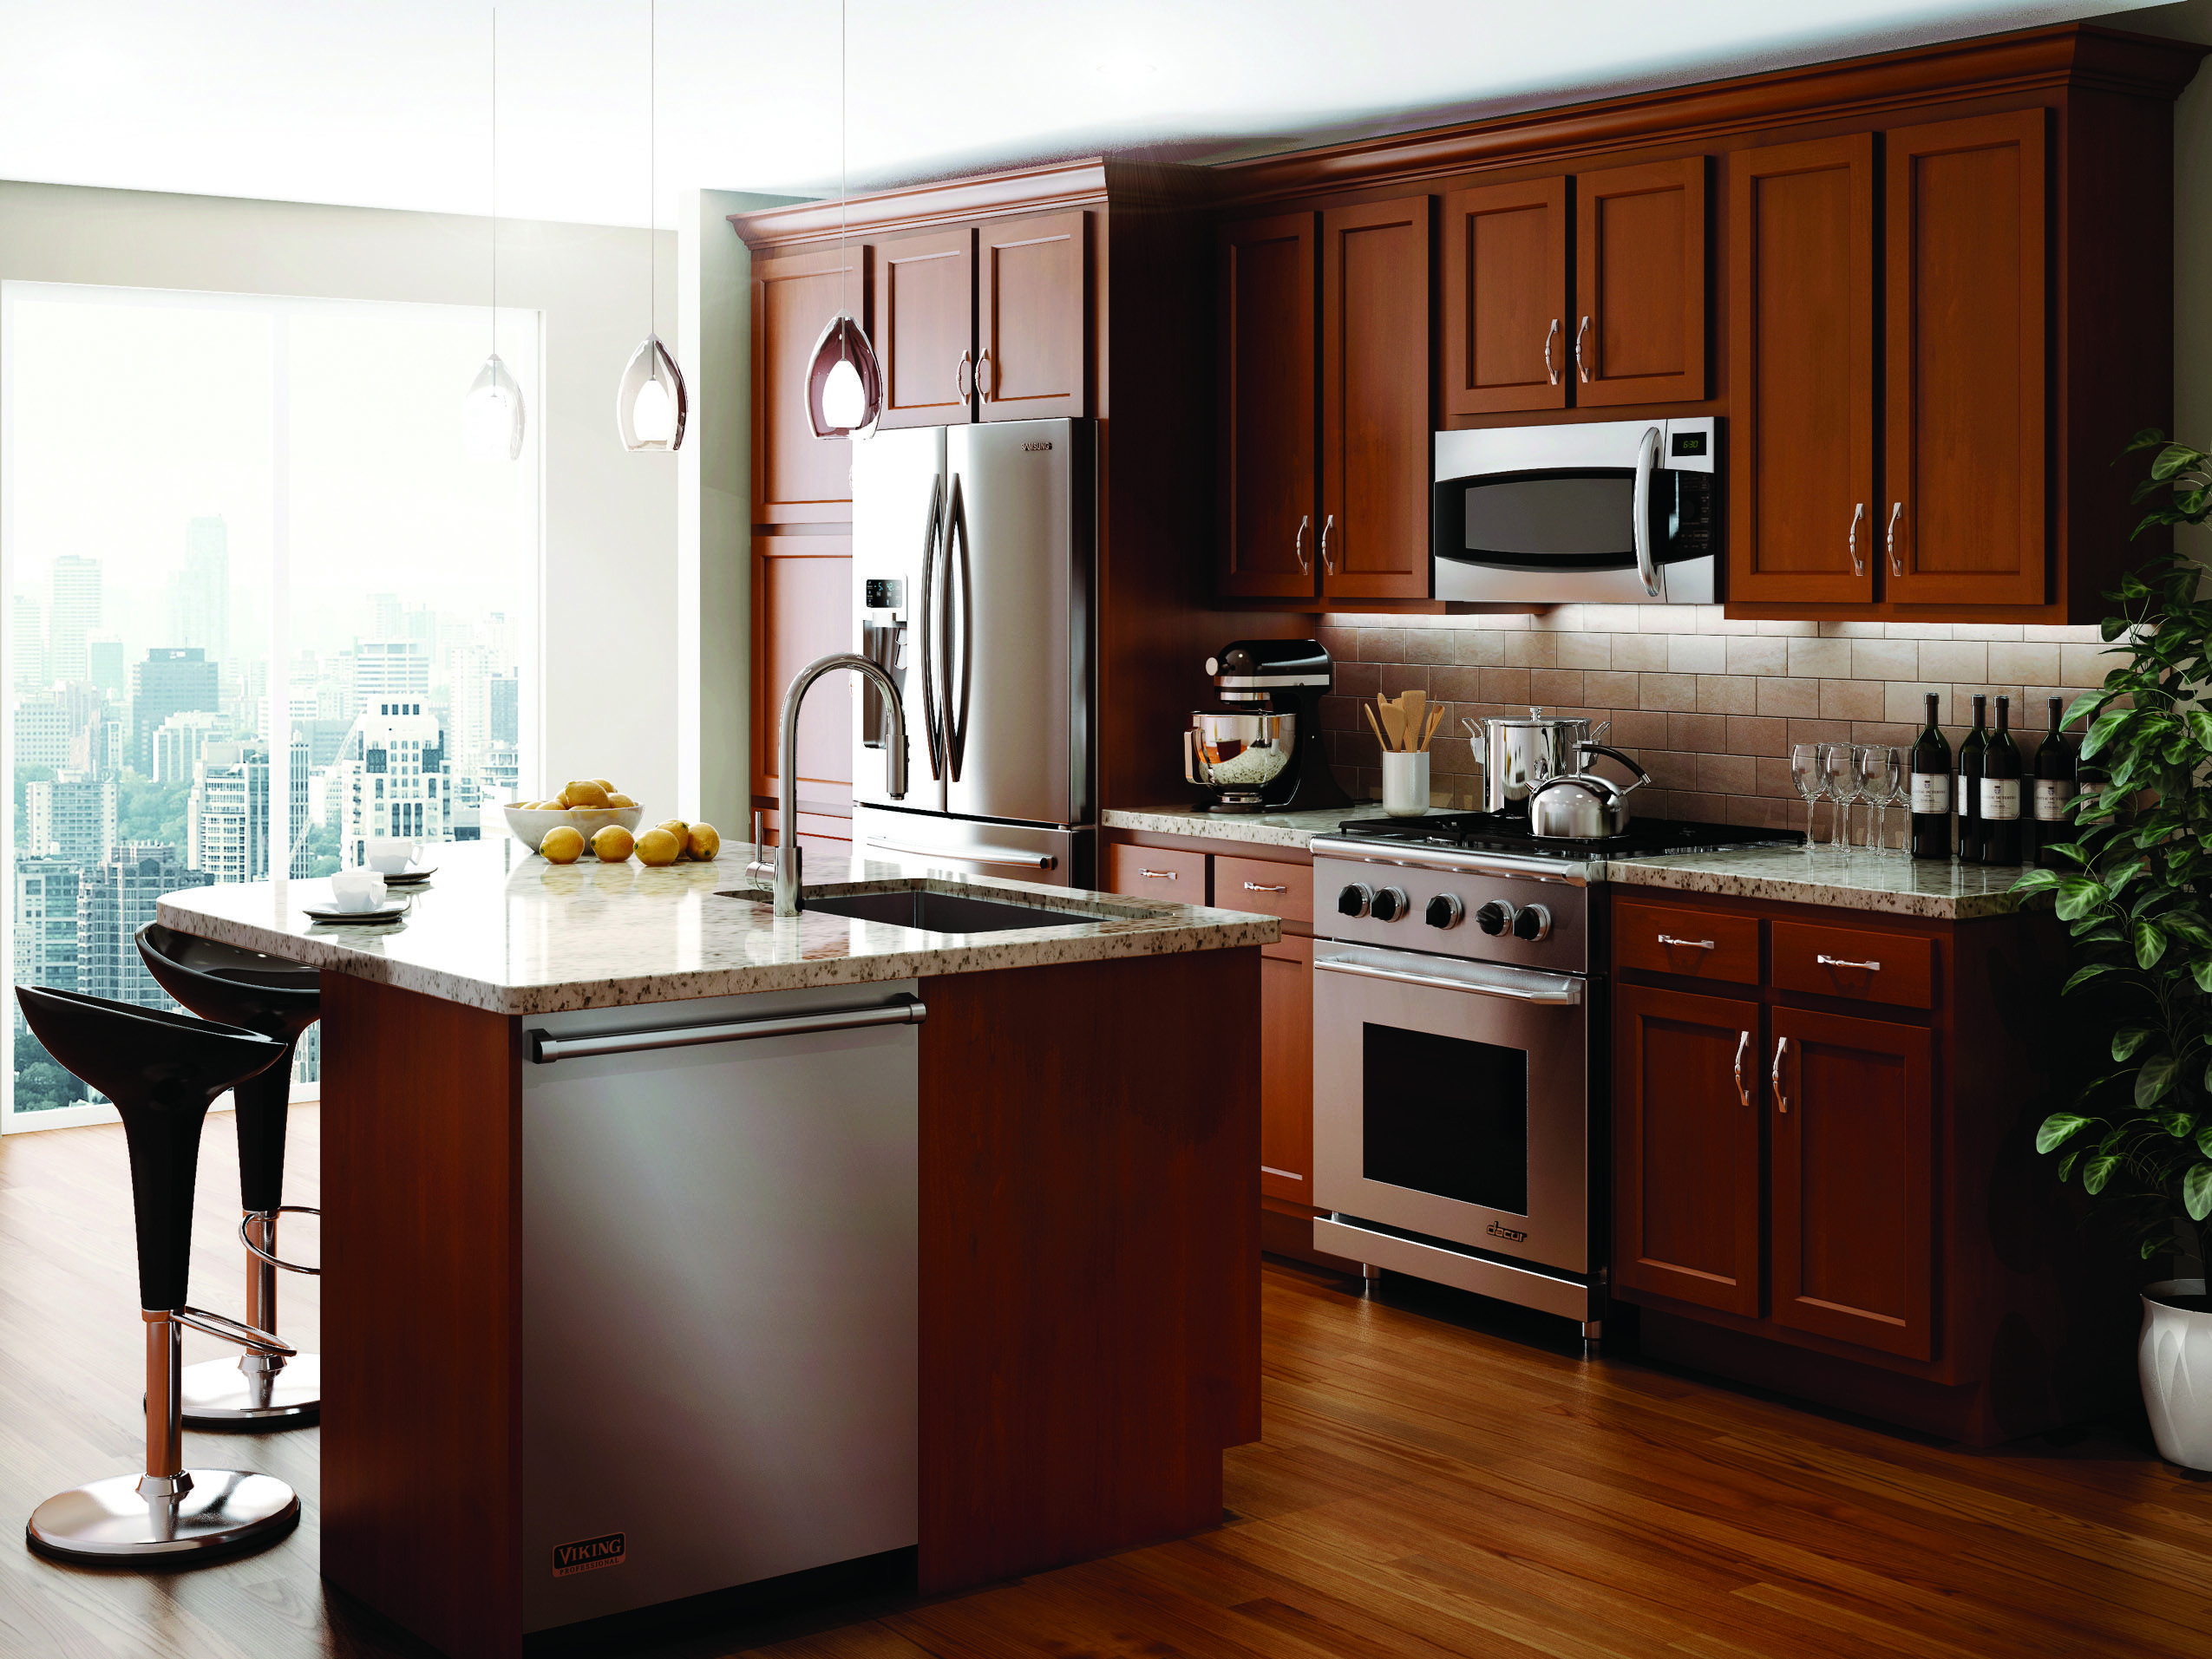 Glenwood Beech With Images Quality Kitchen Cabinets Kitchen